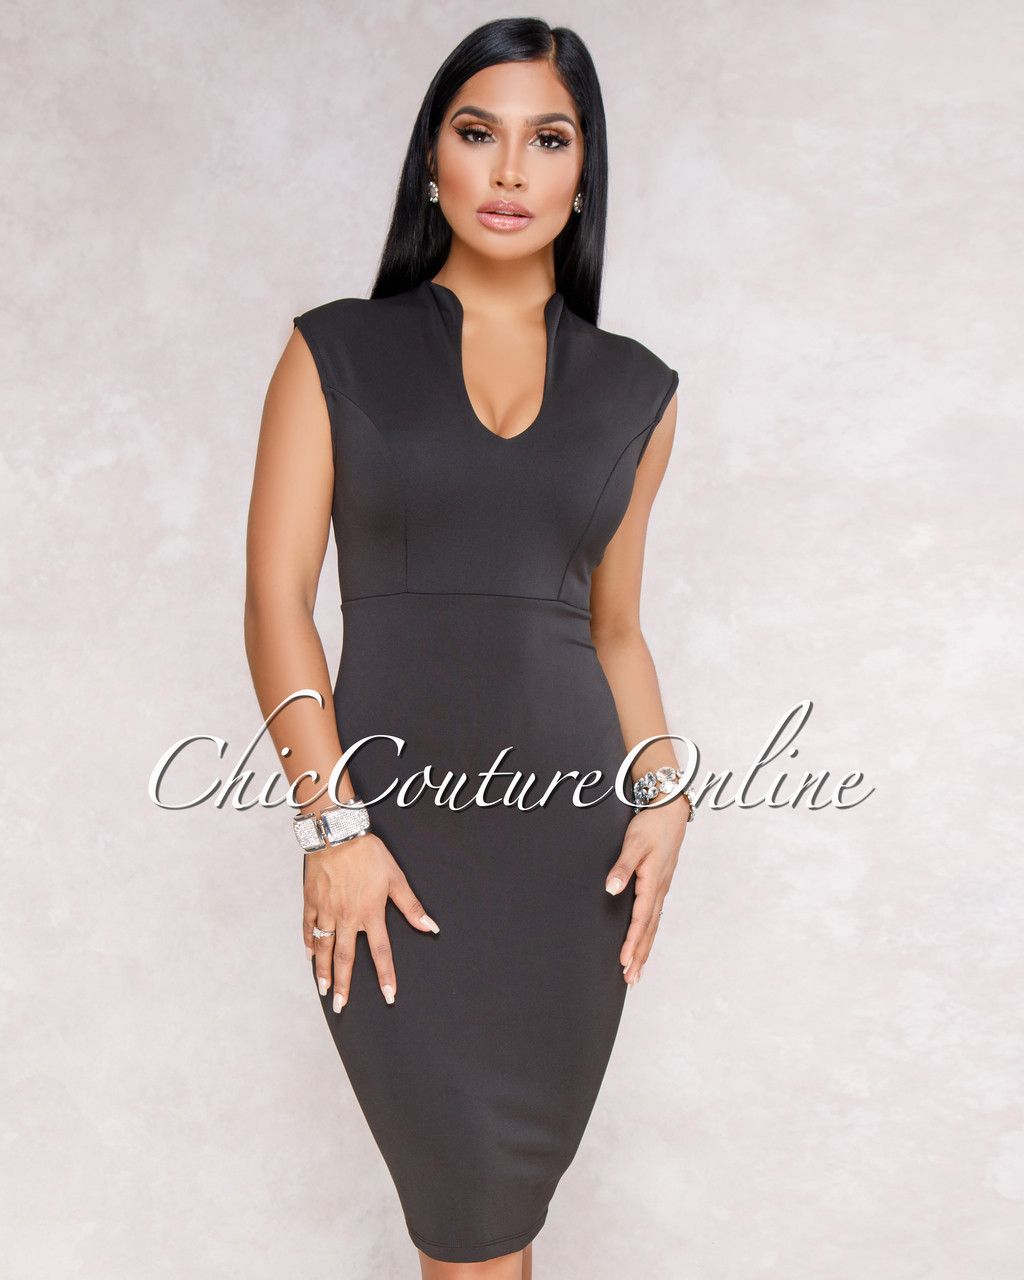 ddd7b95ae679 Anny Black Fitted V-Neck Midi Dress. Price   45.00. Image 1